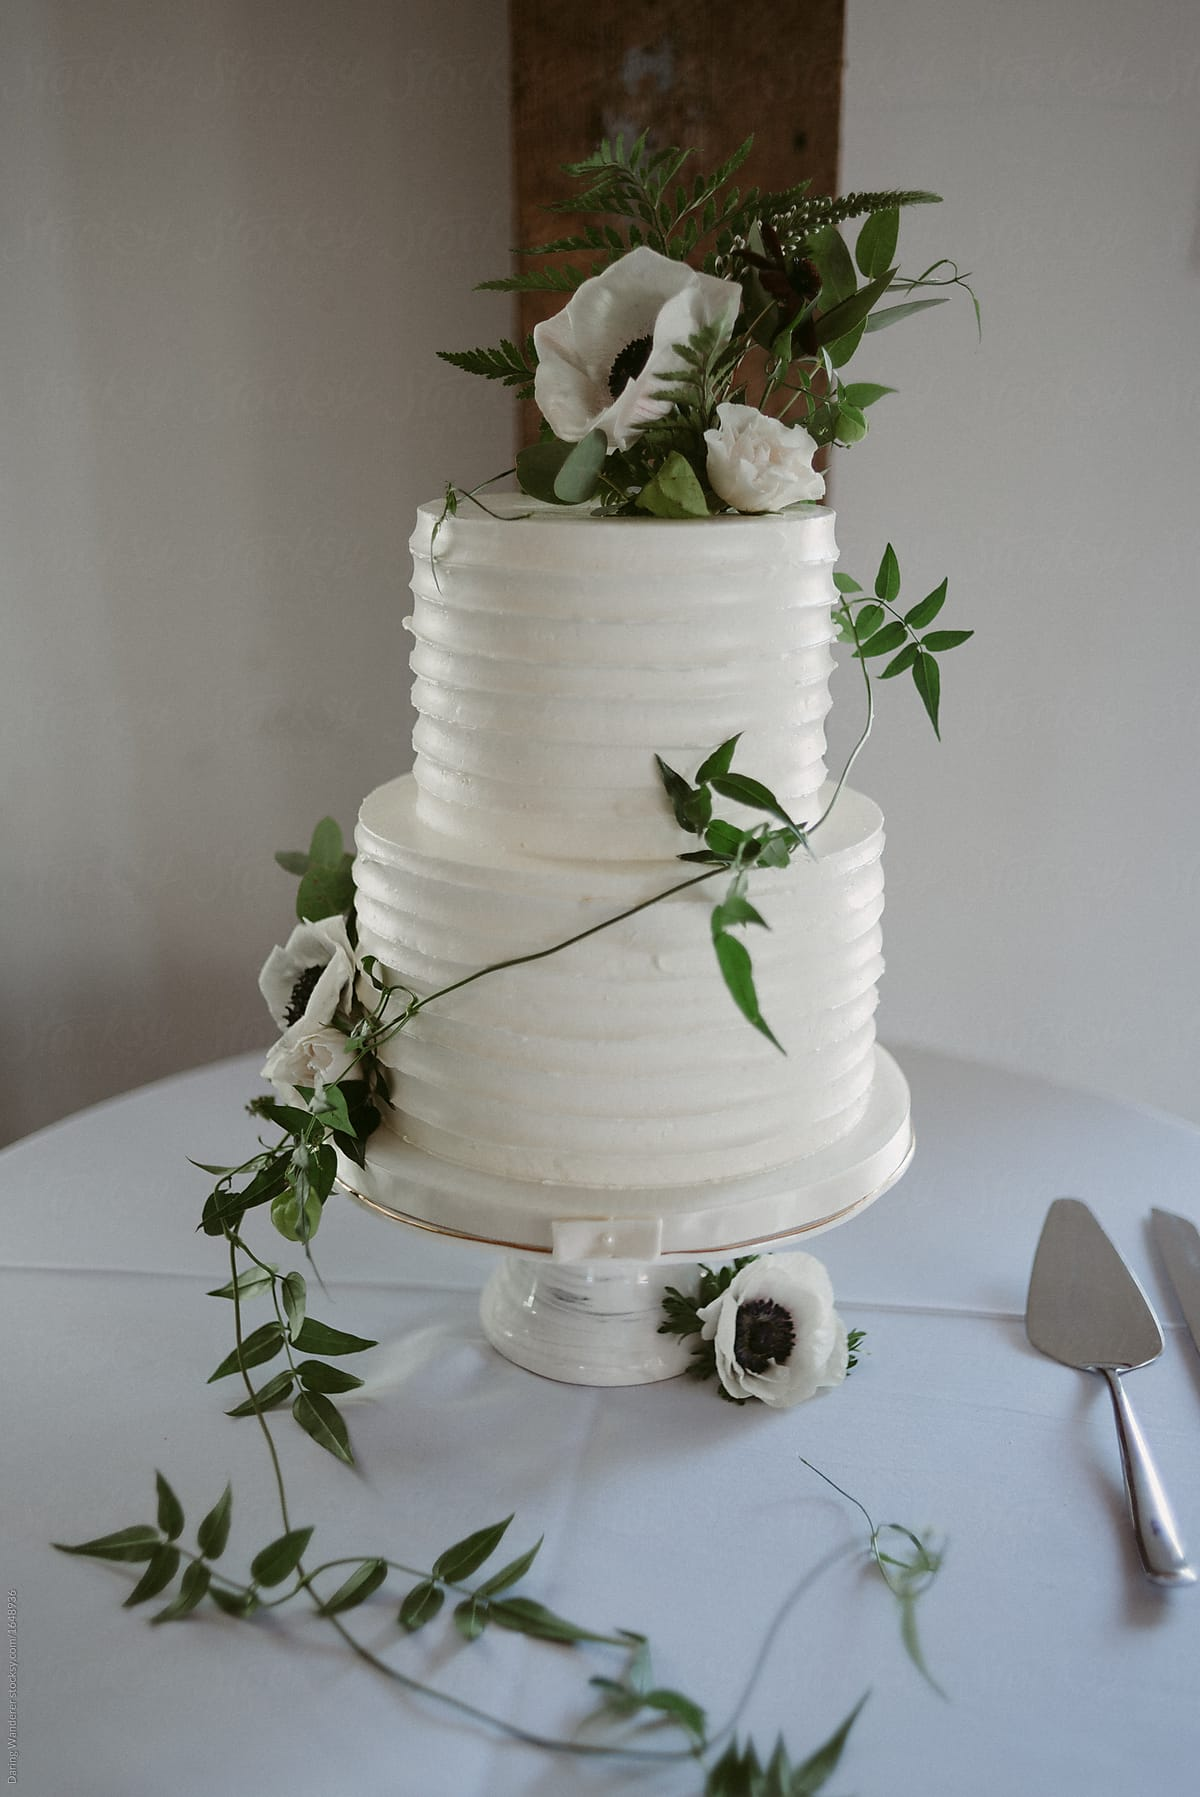 White Icing Wedding Tiered Wedding Cake With Vines And Simple White